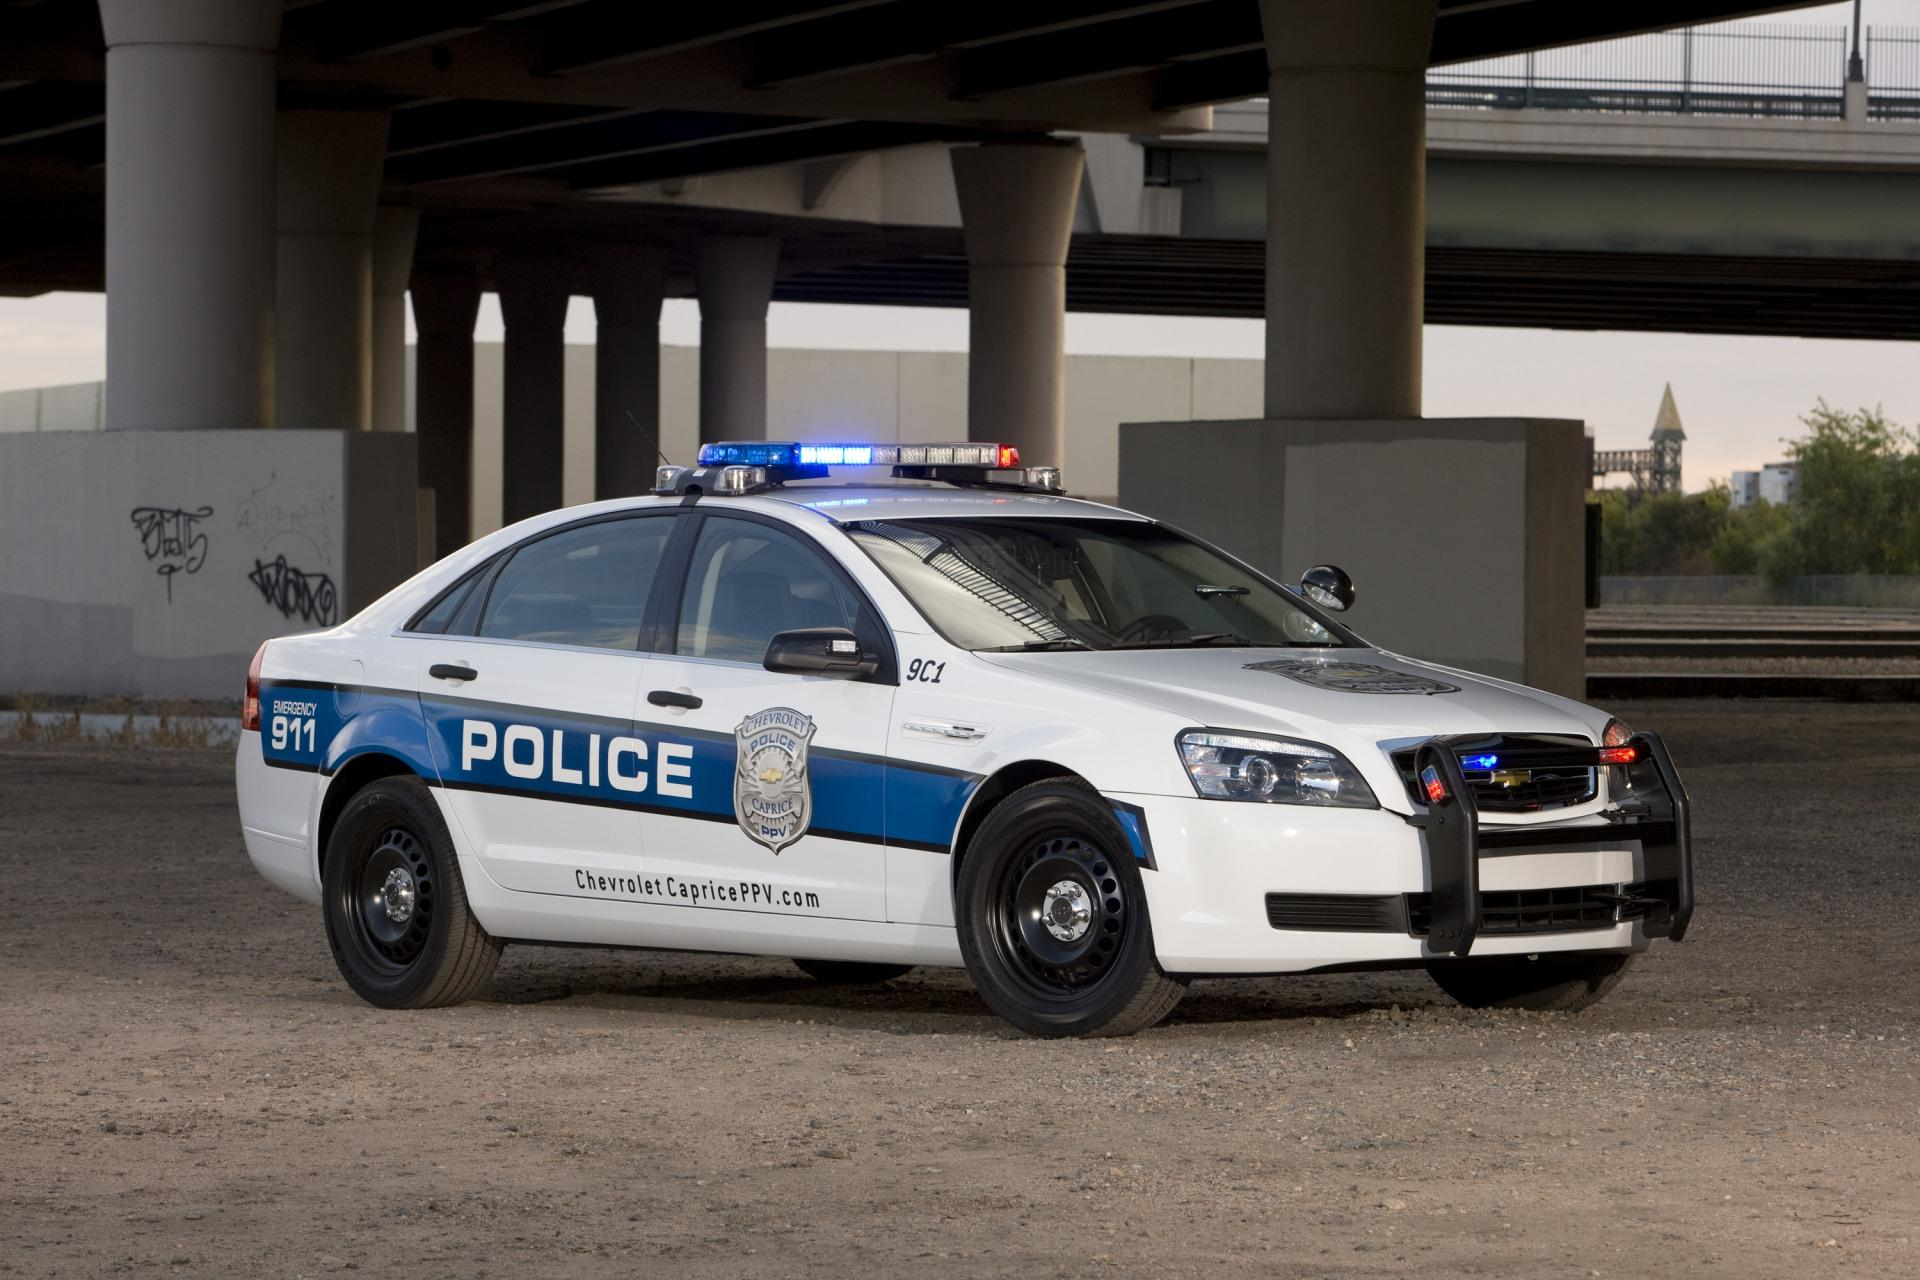 2011 chevrolet caprice police car news and information publicscrutiny Image collections